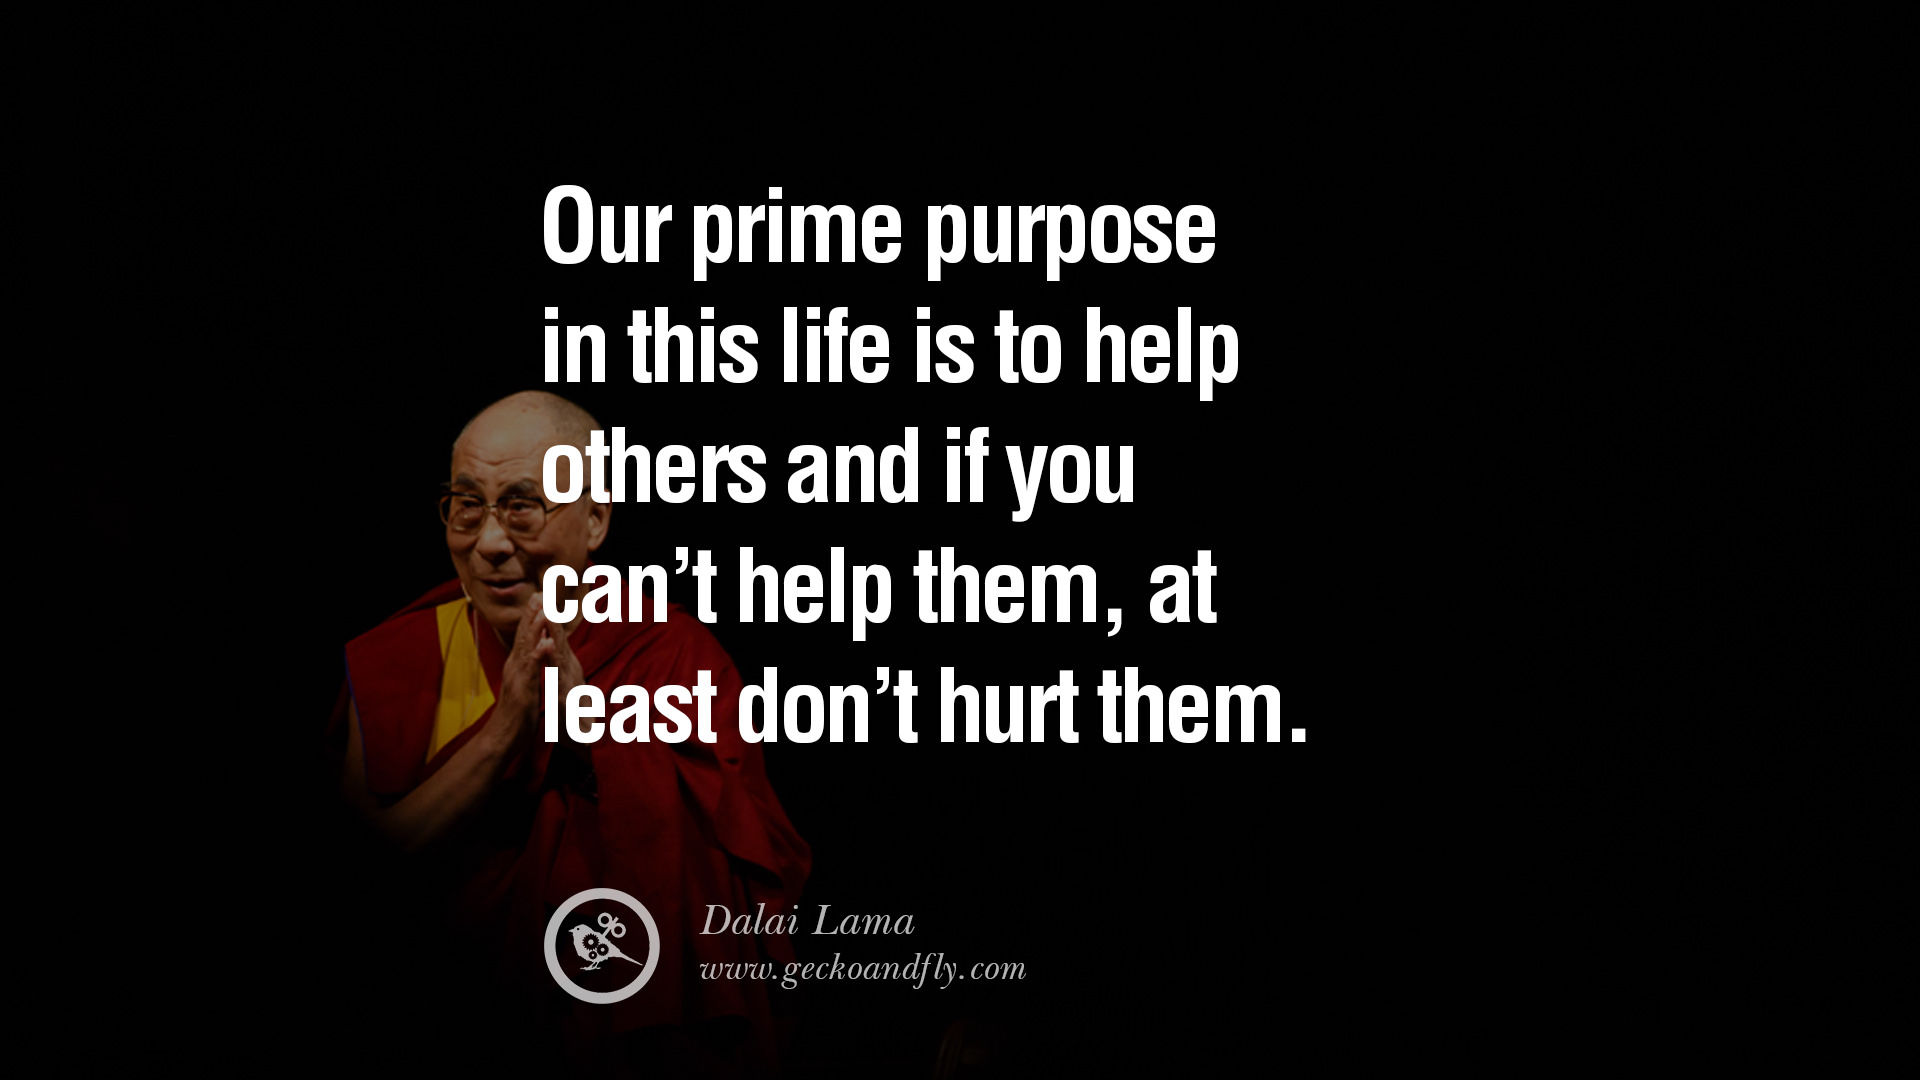 Dalai Lama Quotes On Life Dalai Lama Quotes About Life 955  Bebegi  Bebegi 582848 On Wookmark